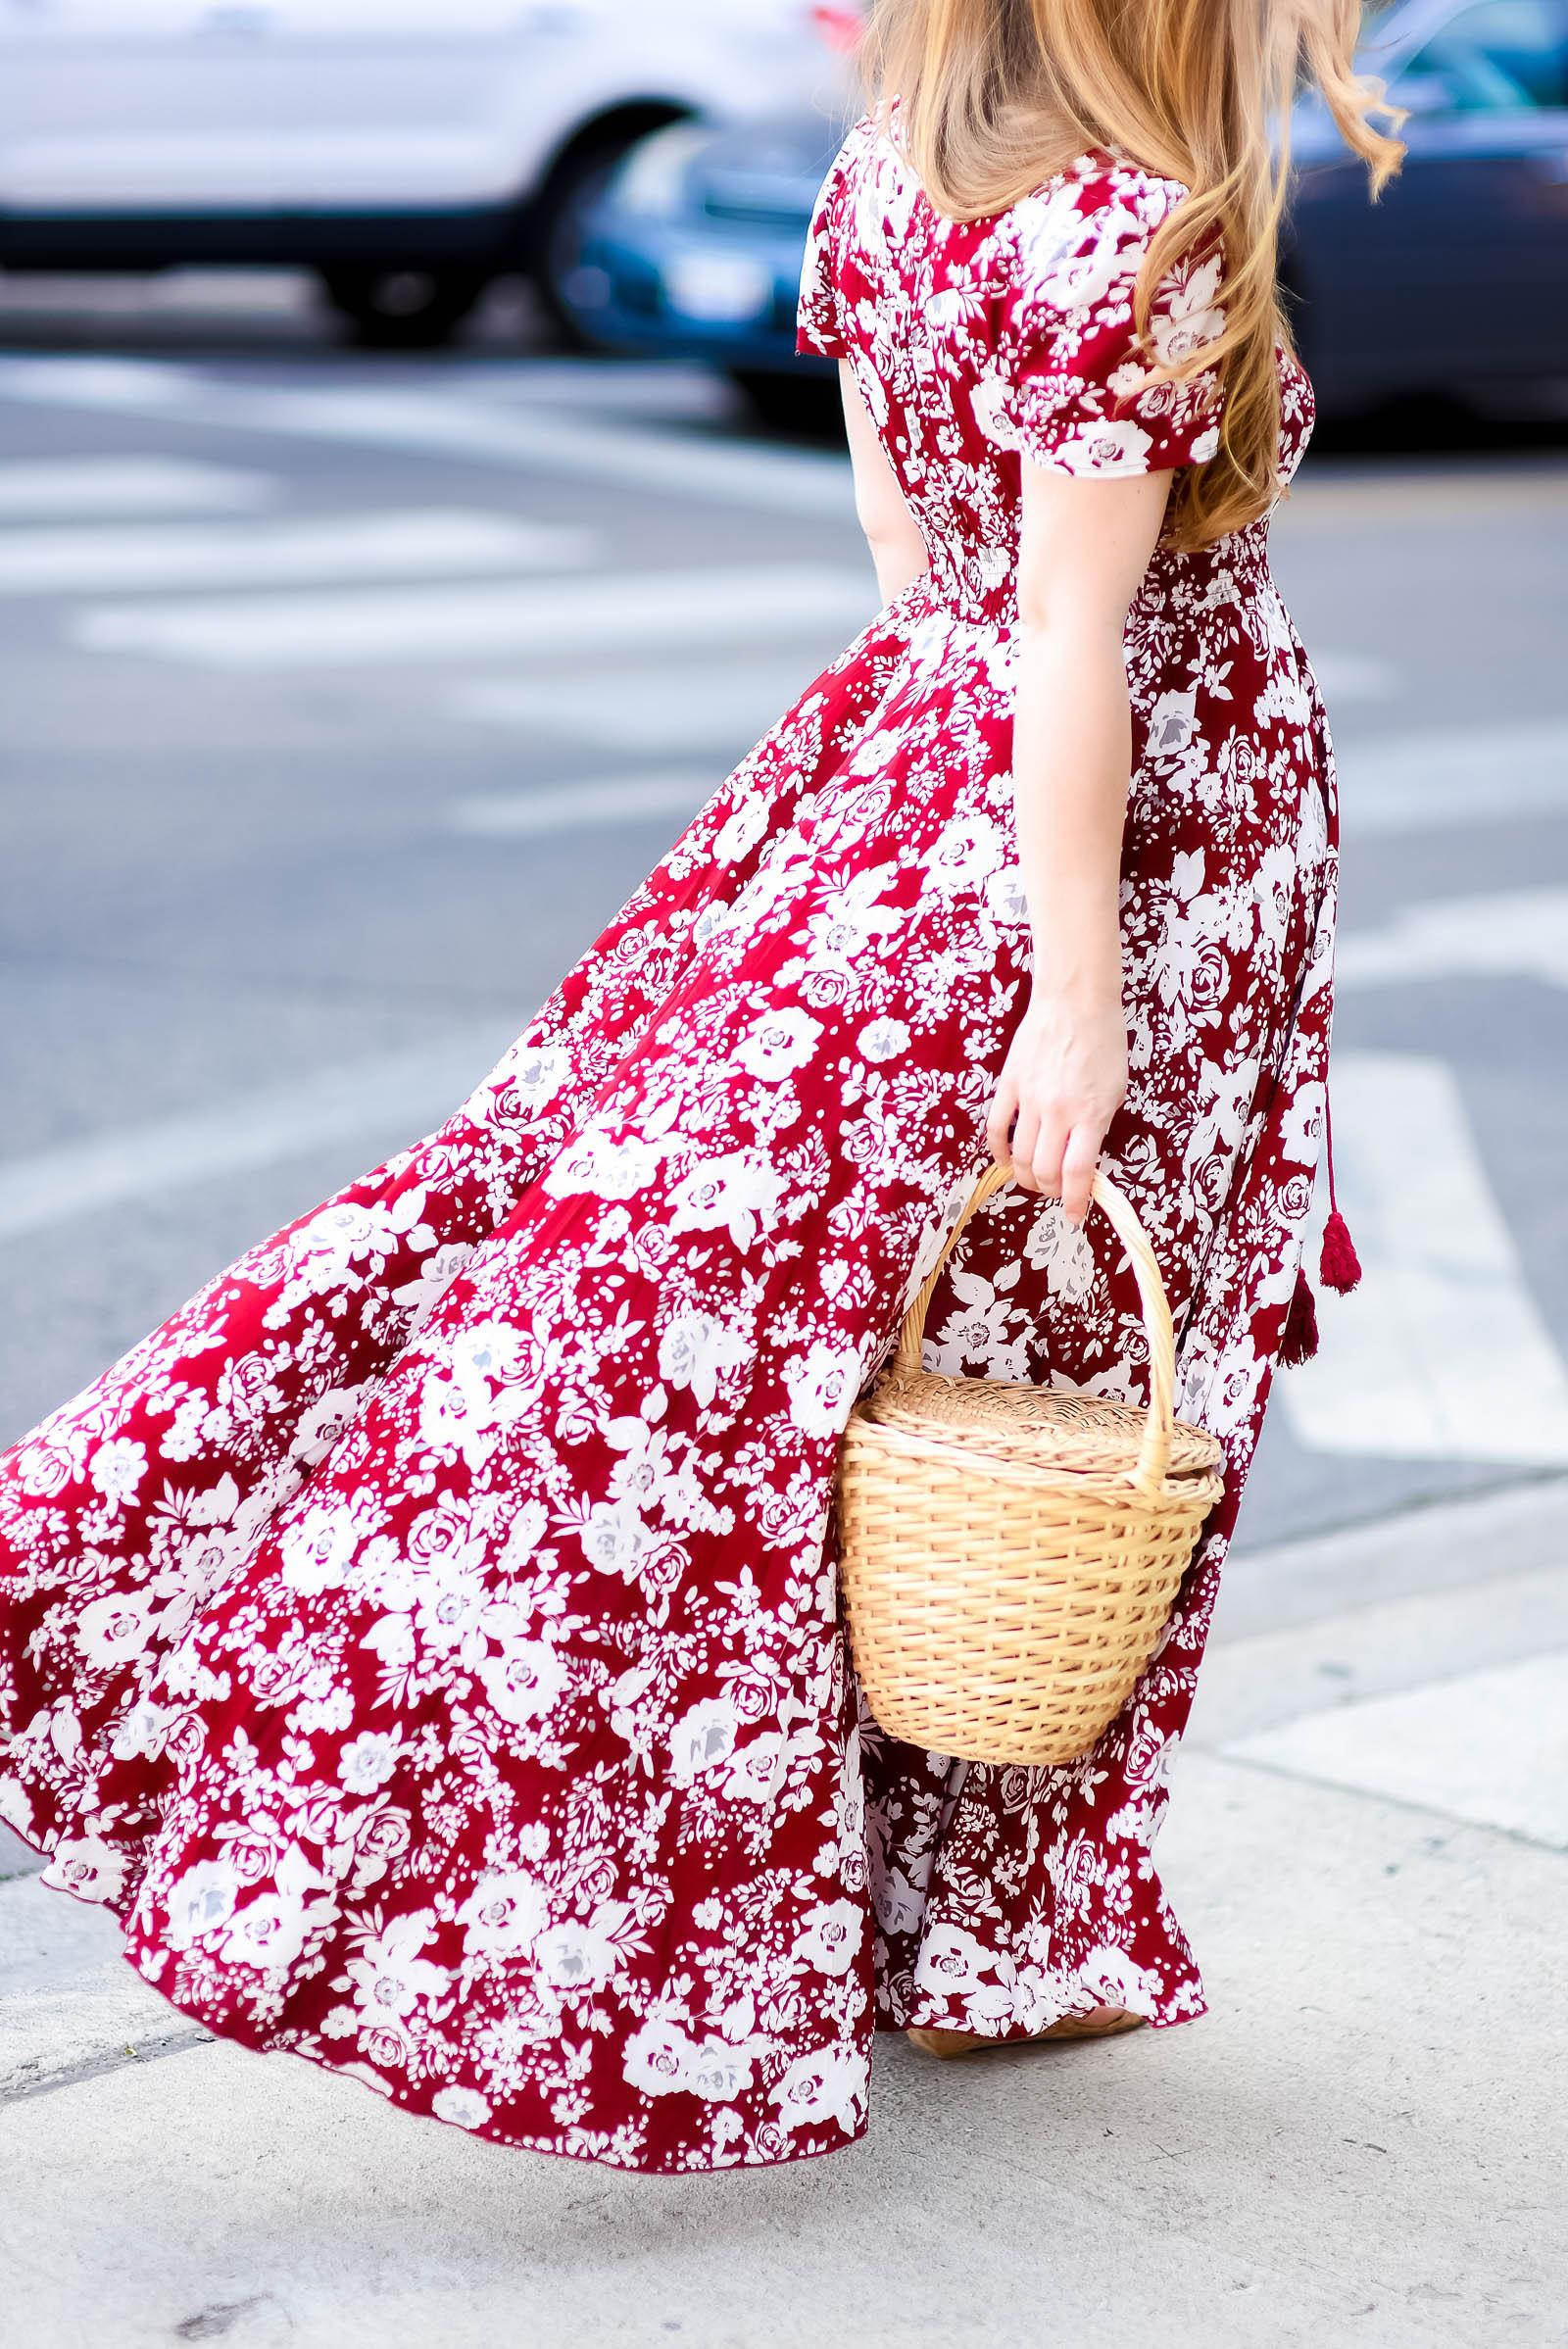 62904b8b04 Burgundy Floral Maxi Dress Basket Bag Style ...